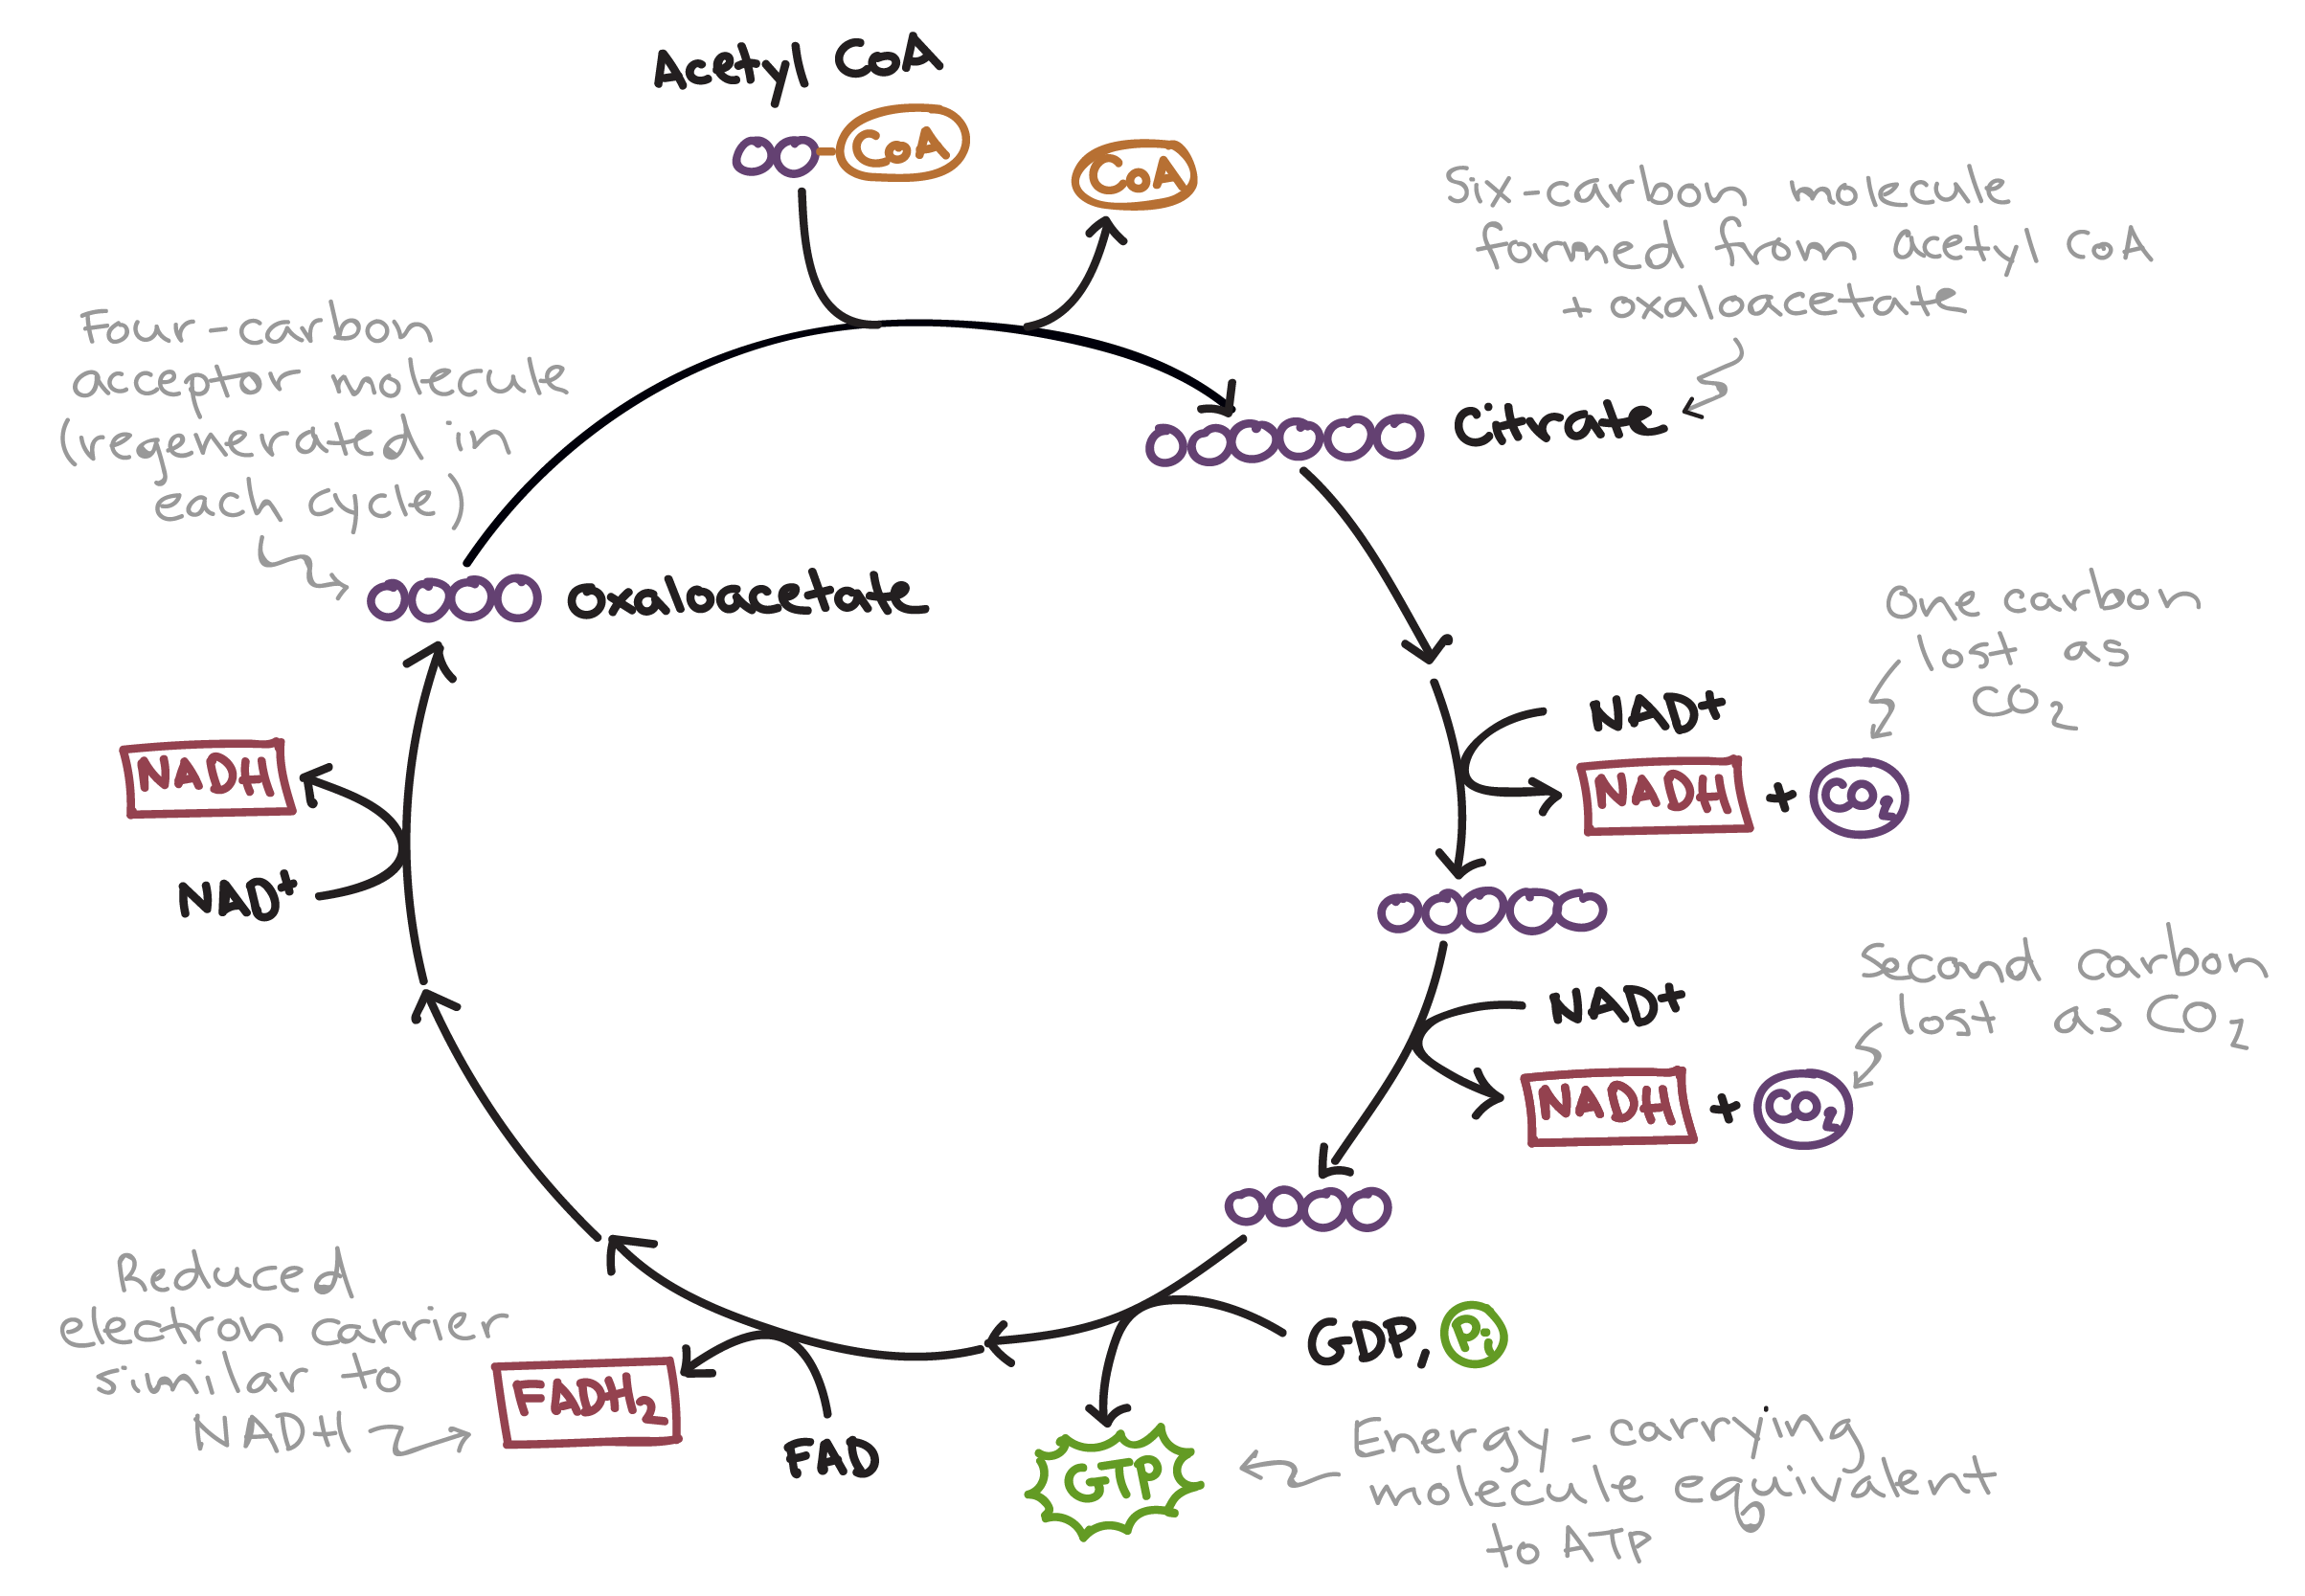 The Citric Acid Cycle Cellular Respiration Article Khan Academy To Make Flow Chart Drawing Illustration Water Diagram Simplified Of First Acetyl Coa Combines With Oxaloacetate